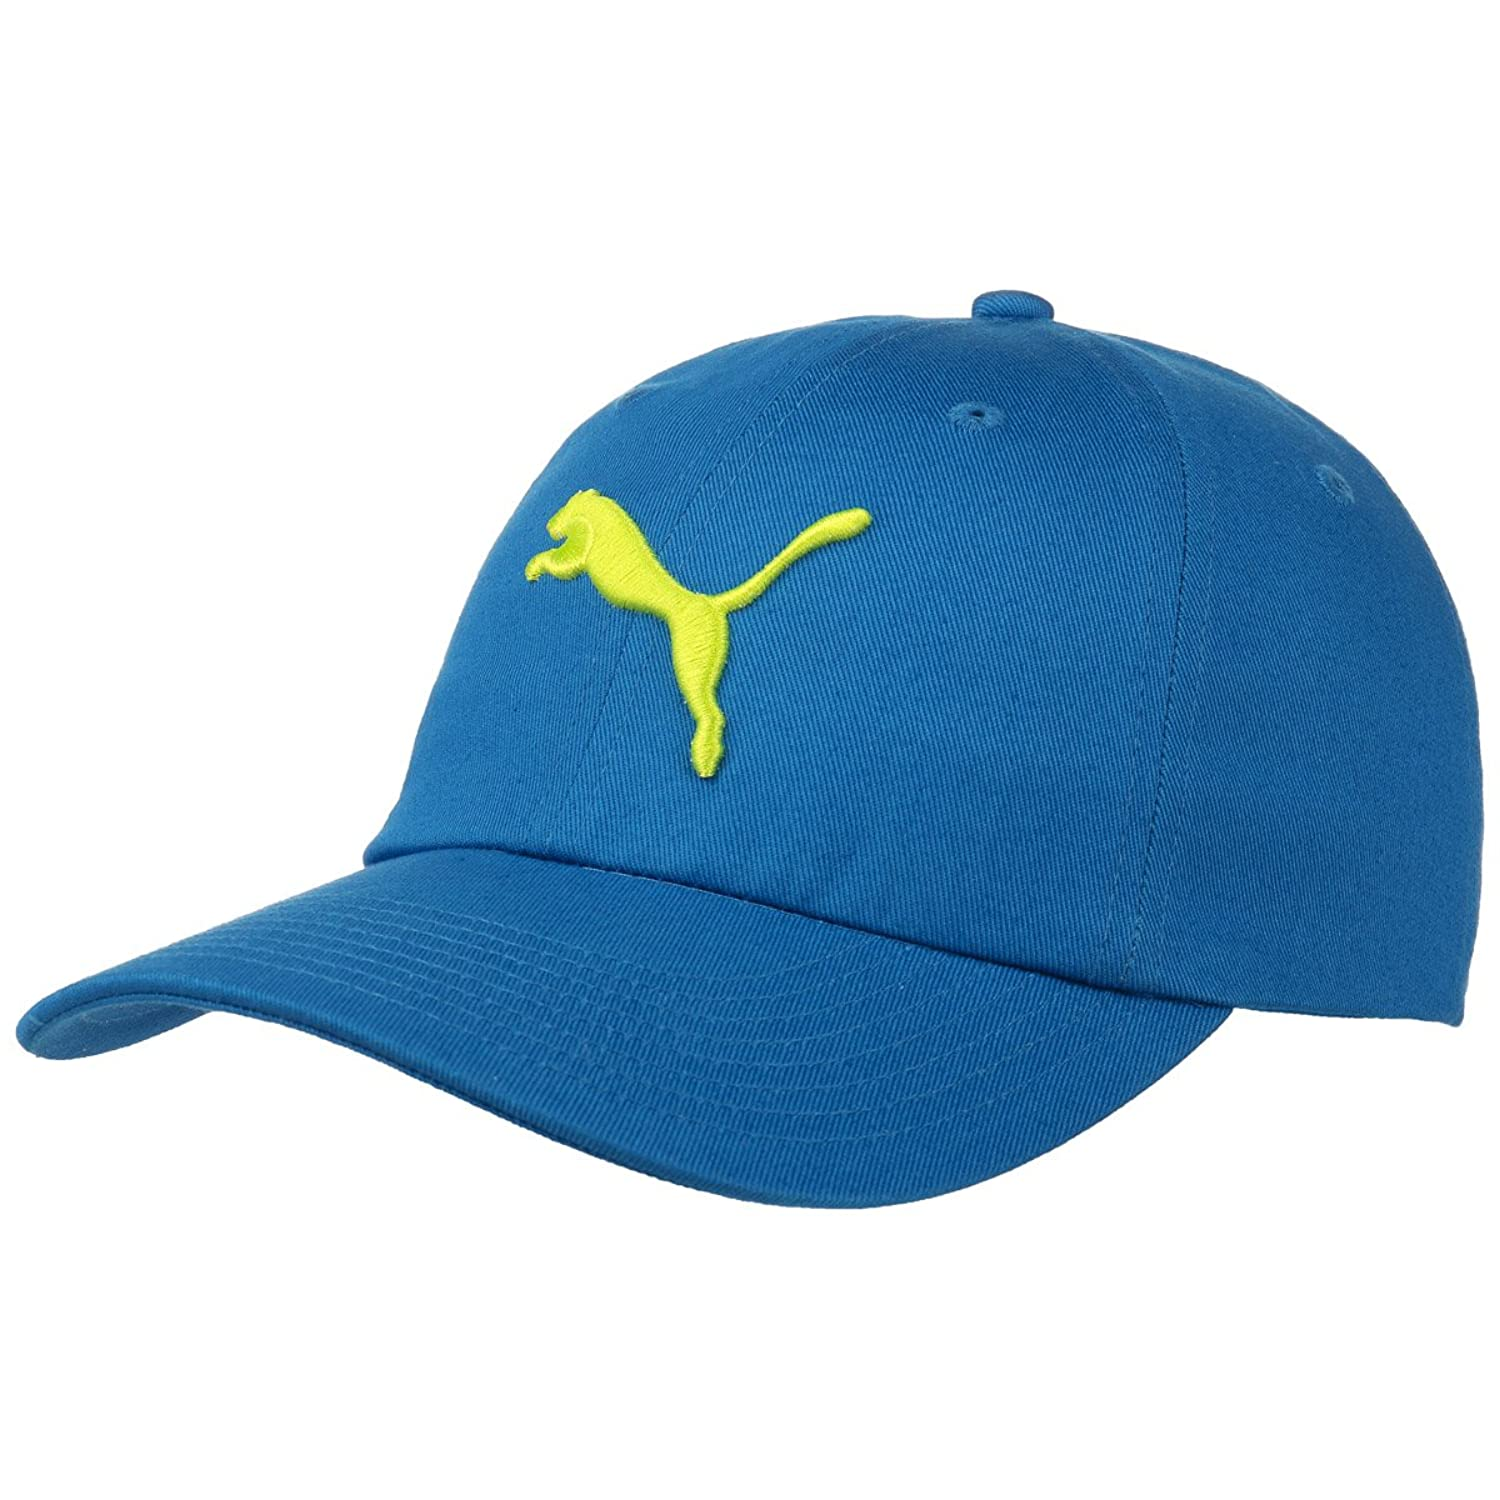 Upto 60% off On Puma By Amazon | Puma ESS Cap Puma Royal-Big Cat @ Rs.449